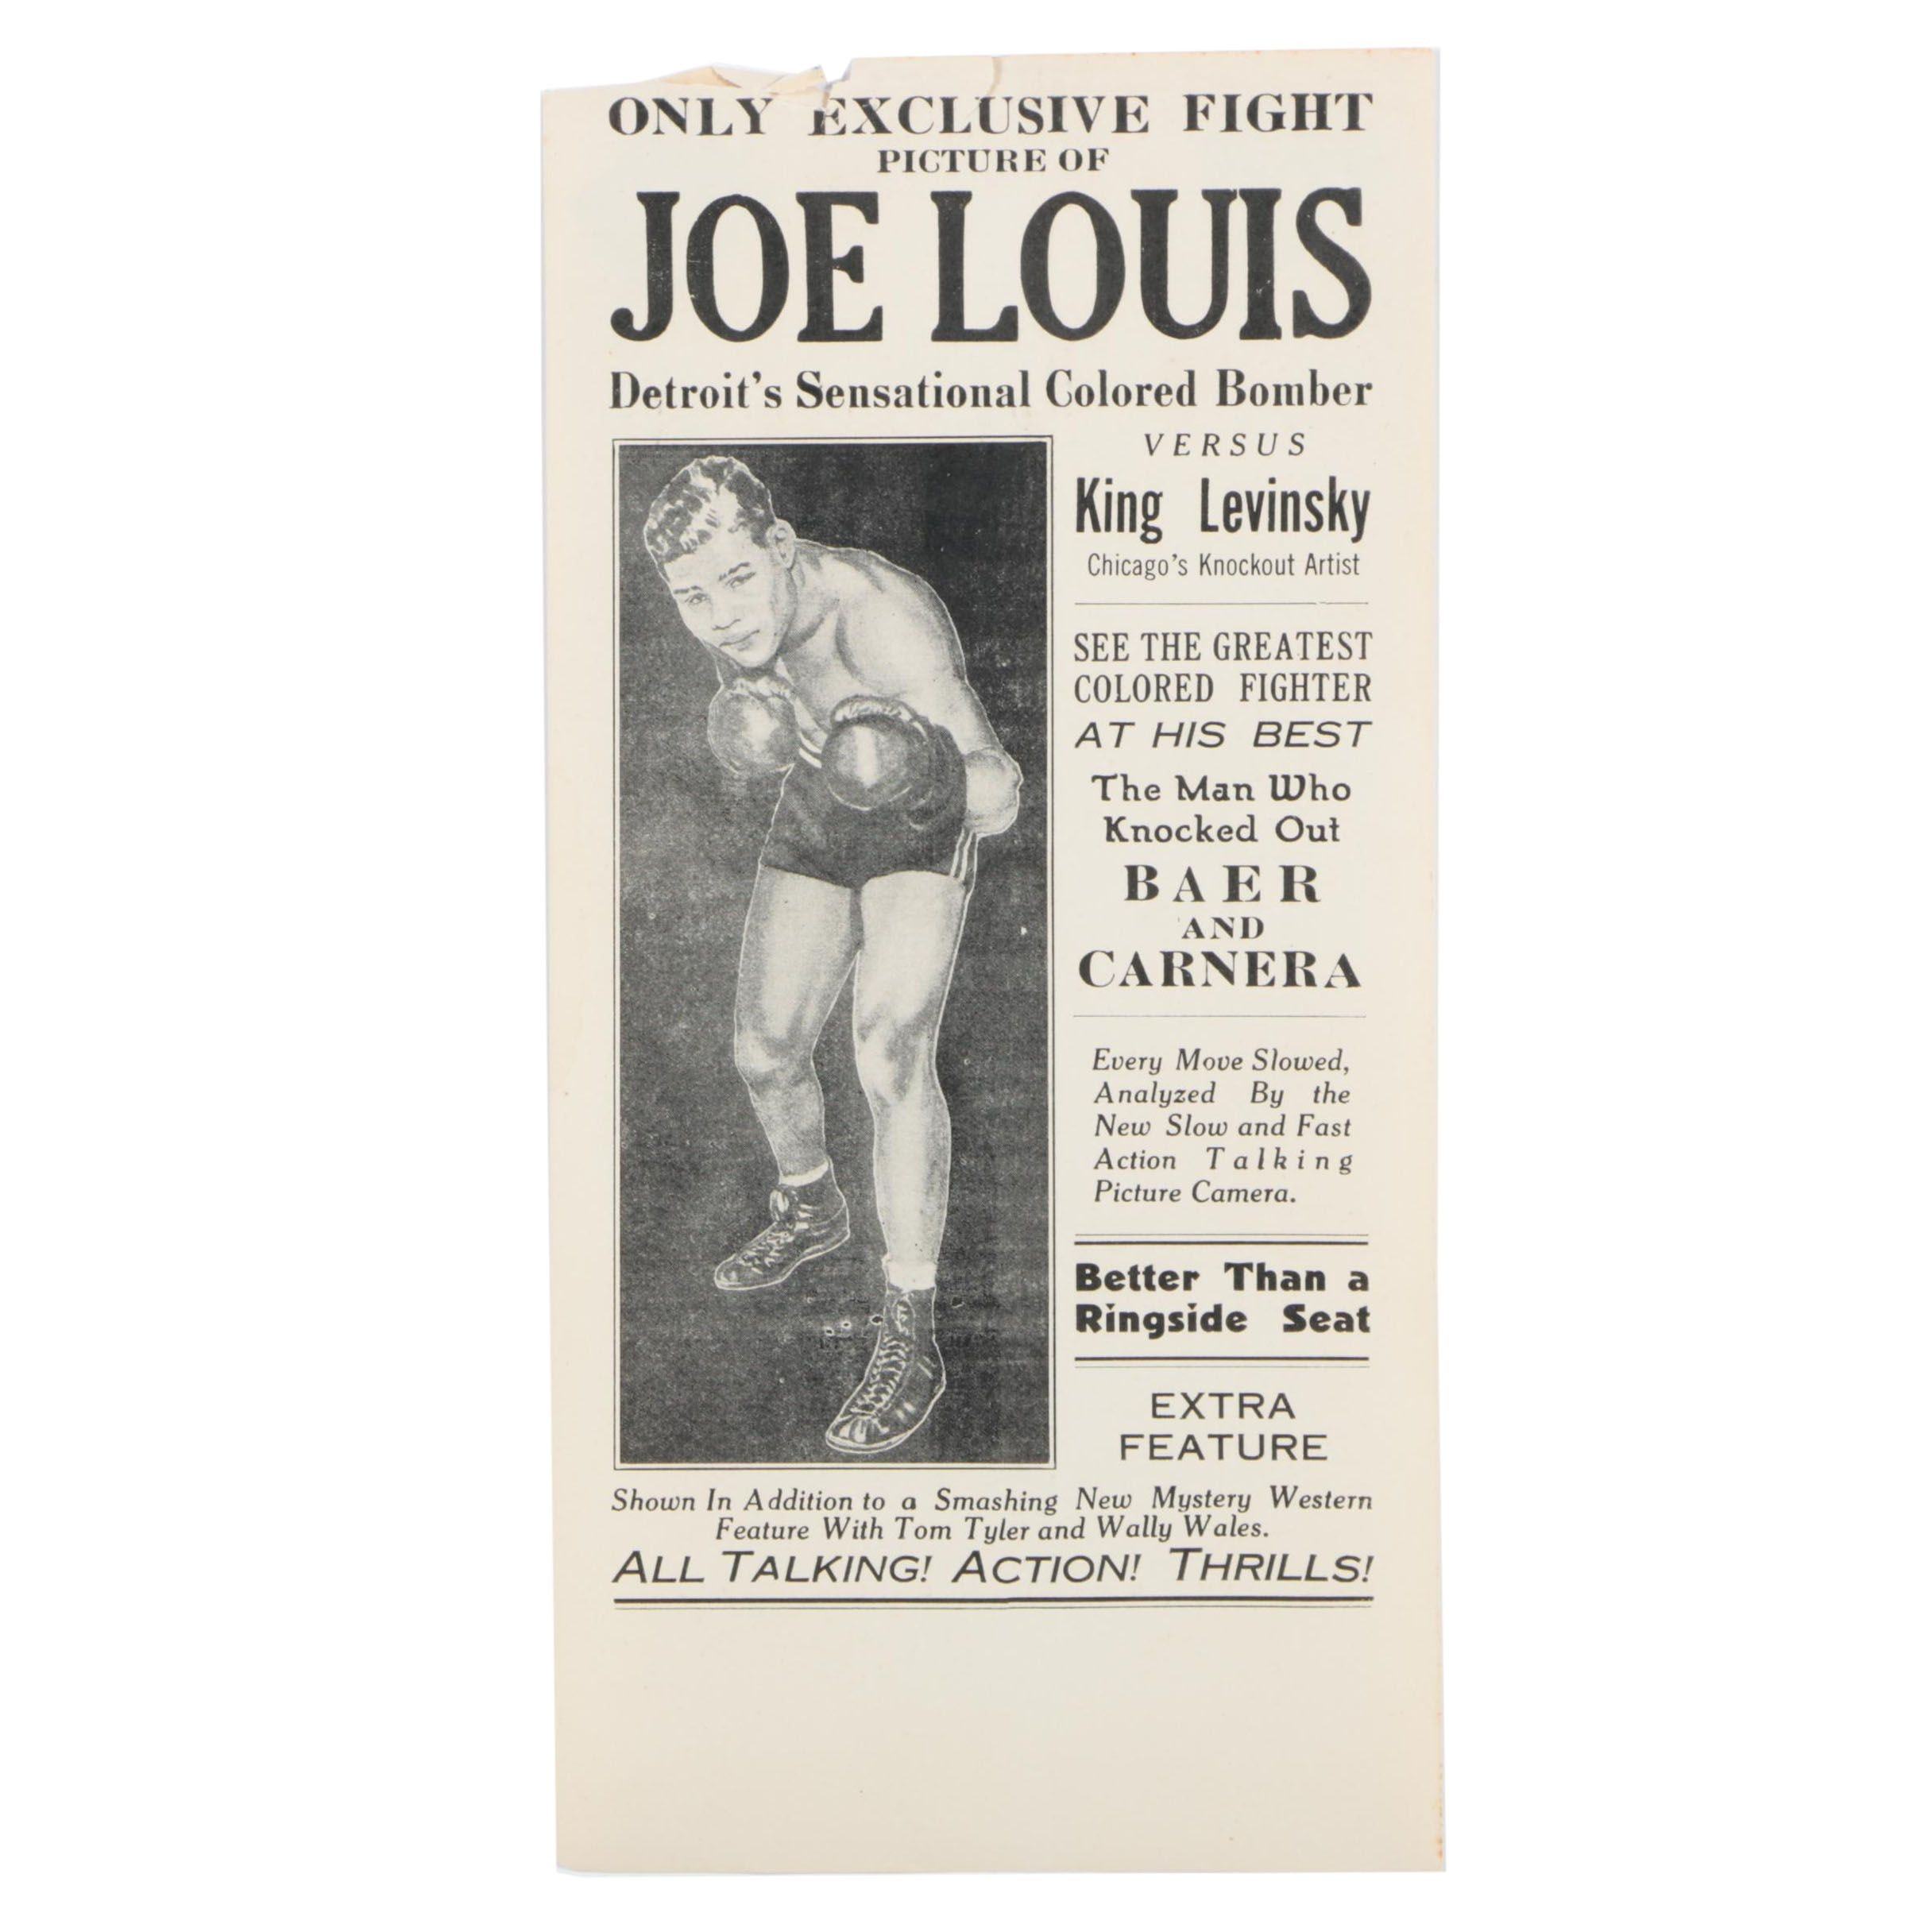 Vintage Poster for a Showing of a Joe Louis Boxing Match